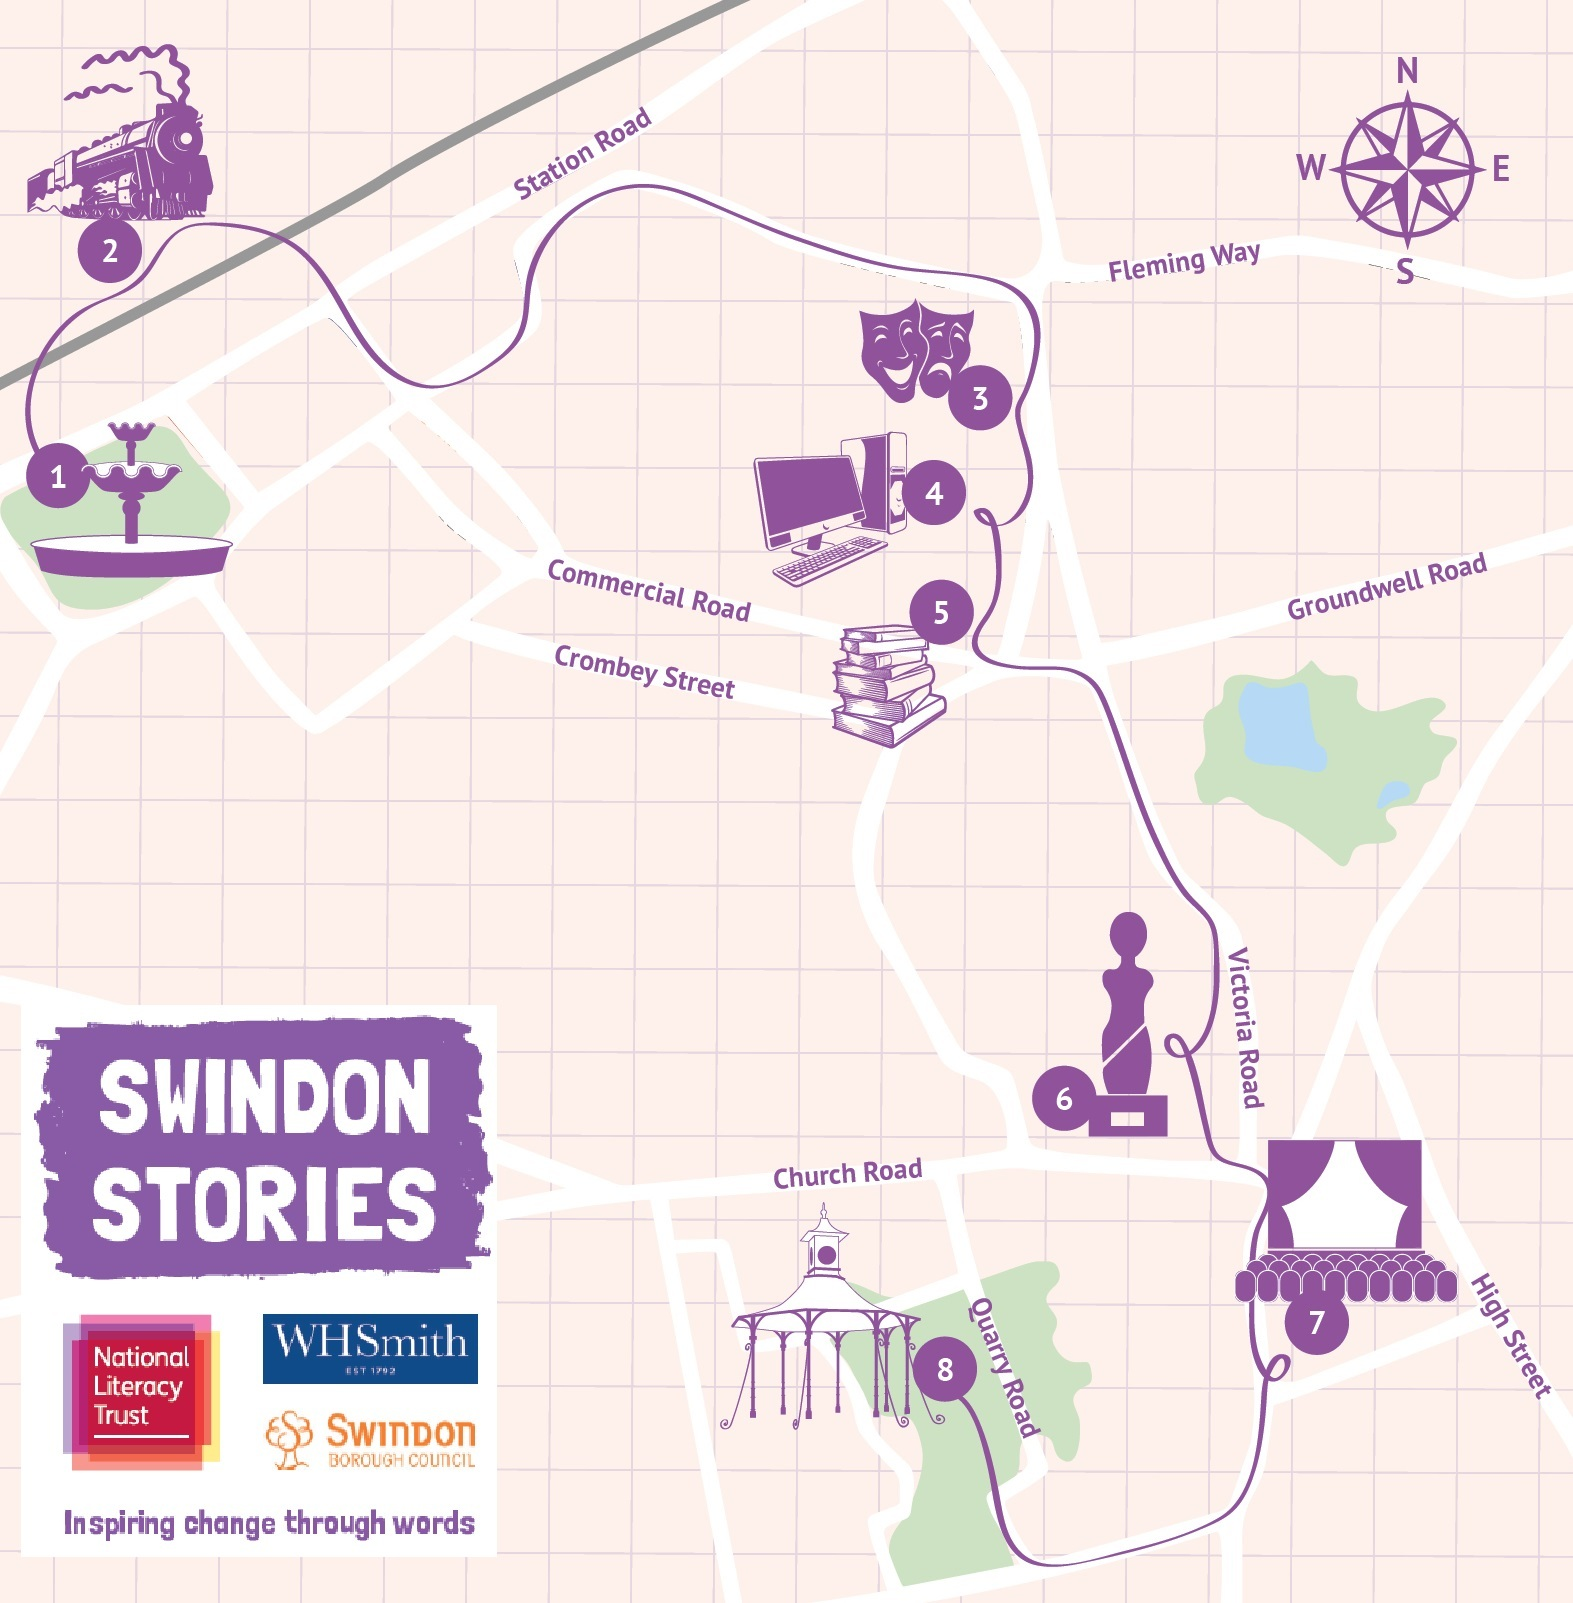 The Swindon Stories Lost for Words trail map